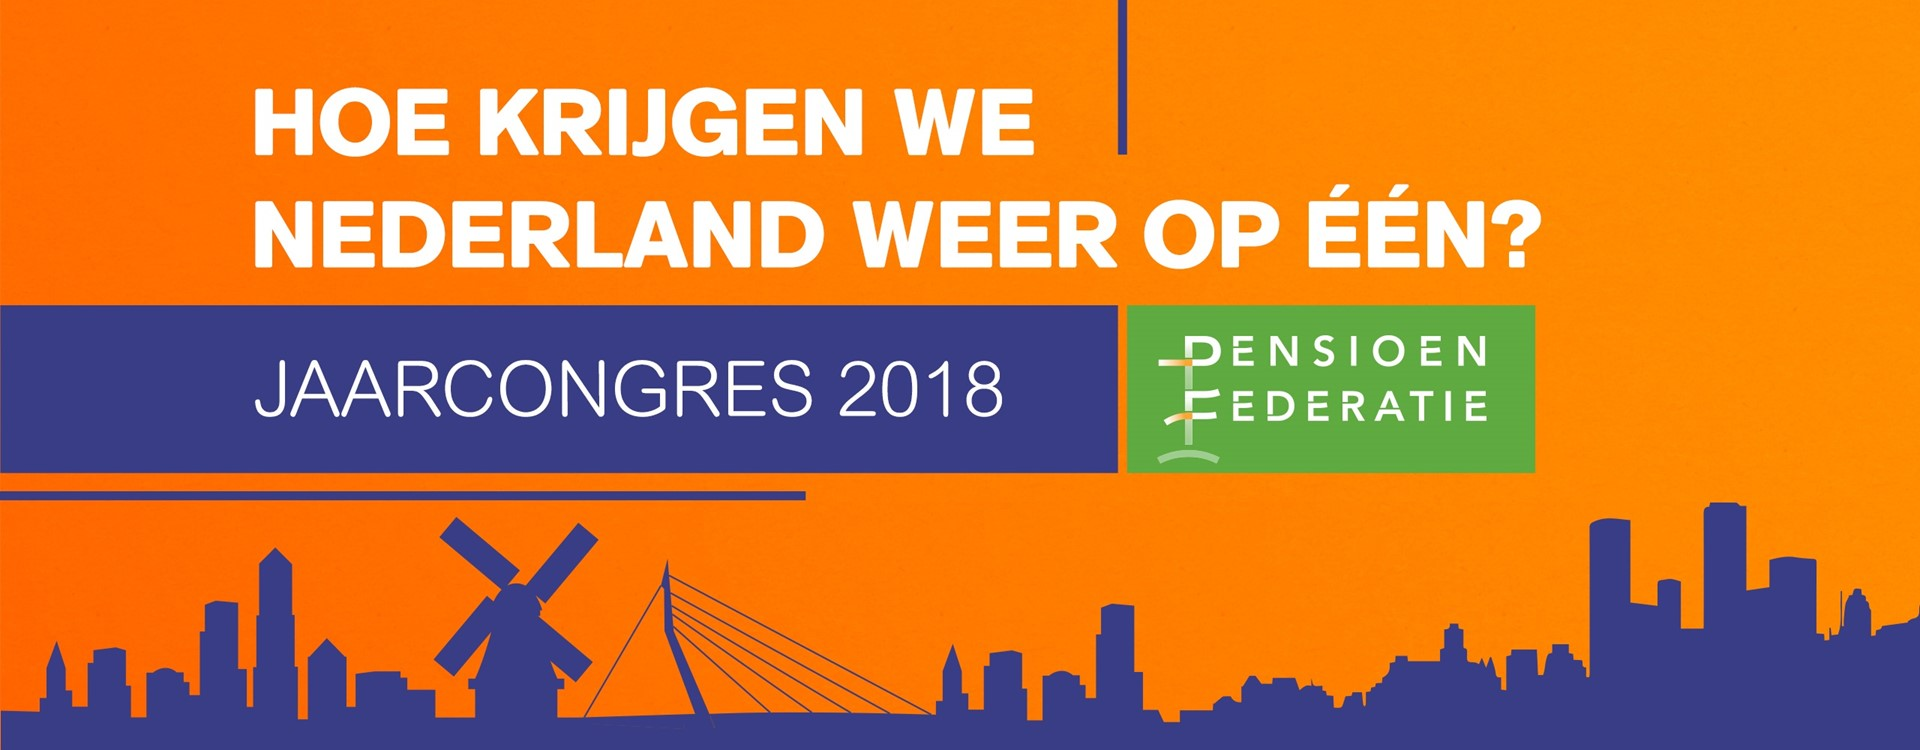 Jaarcongres header